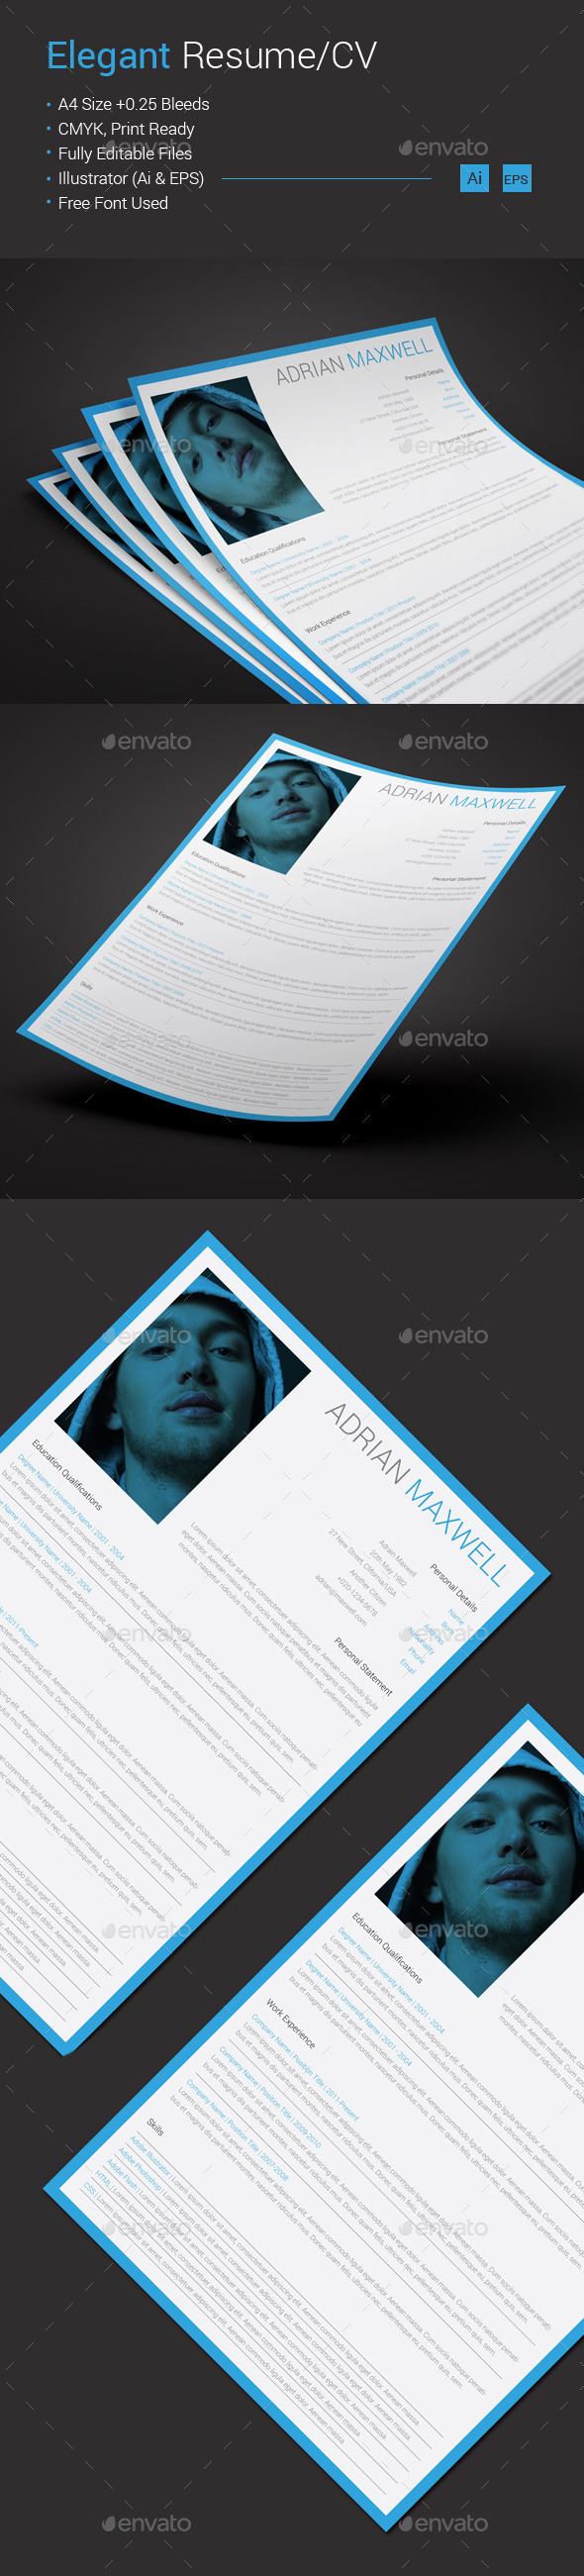 GraphicRiver Elegant Resume CV 10593274